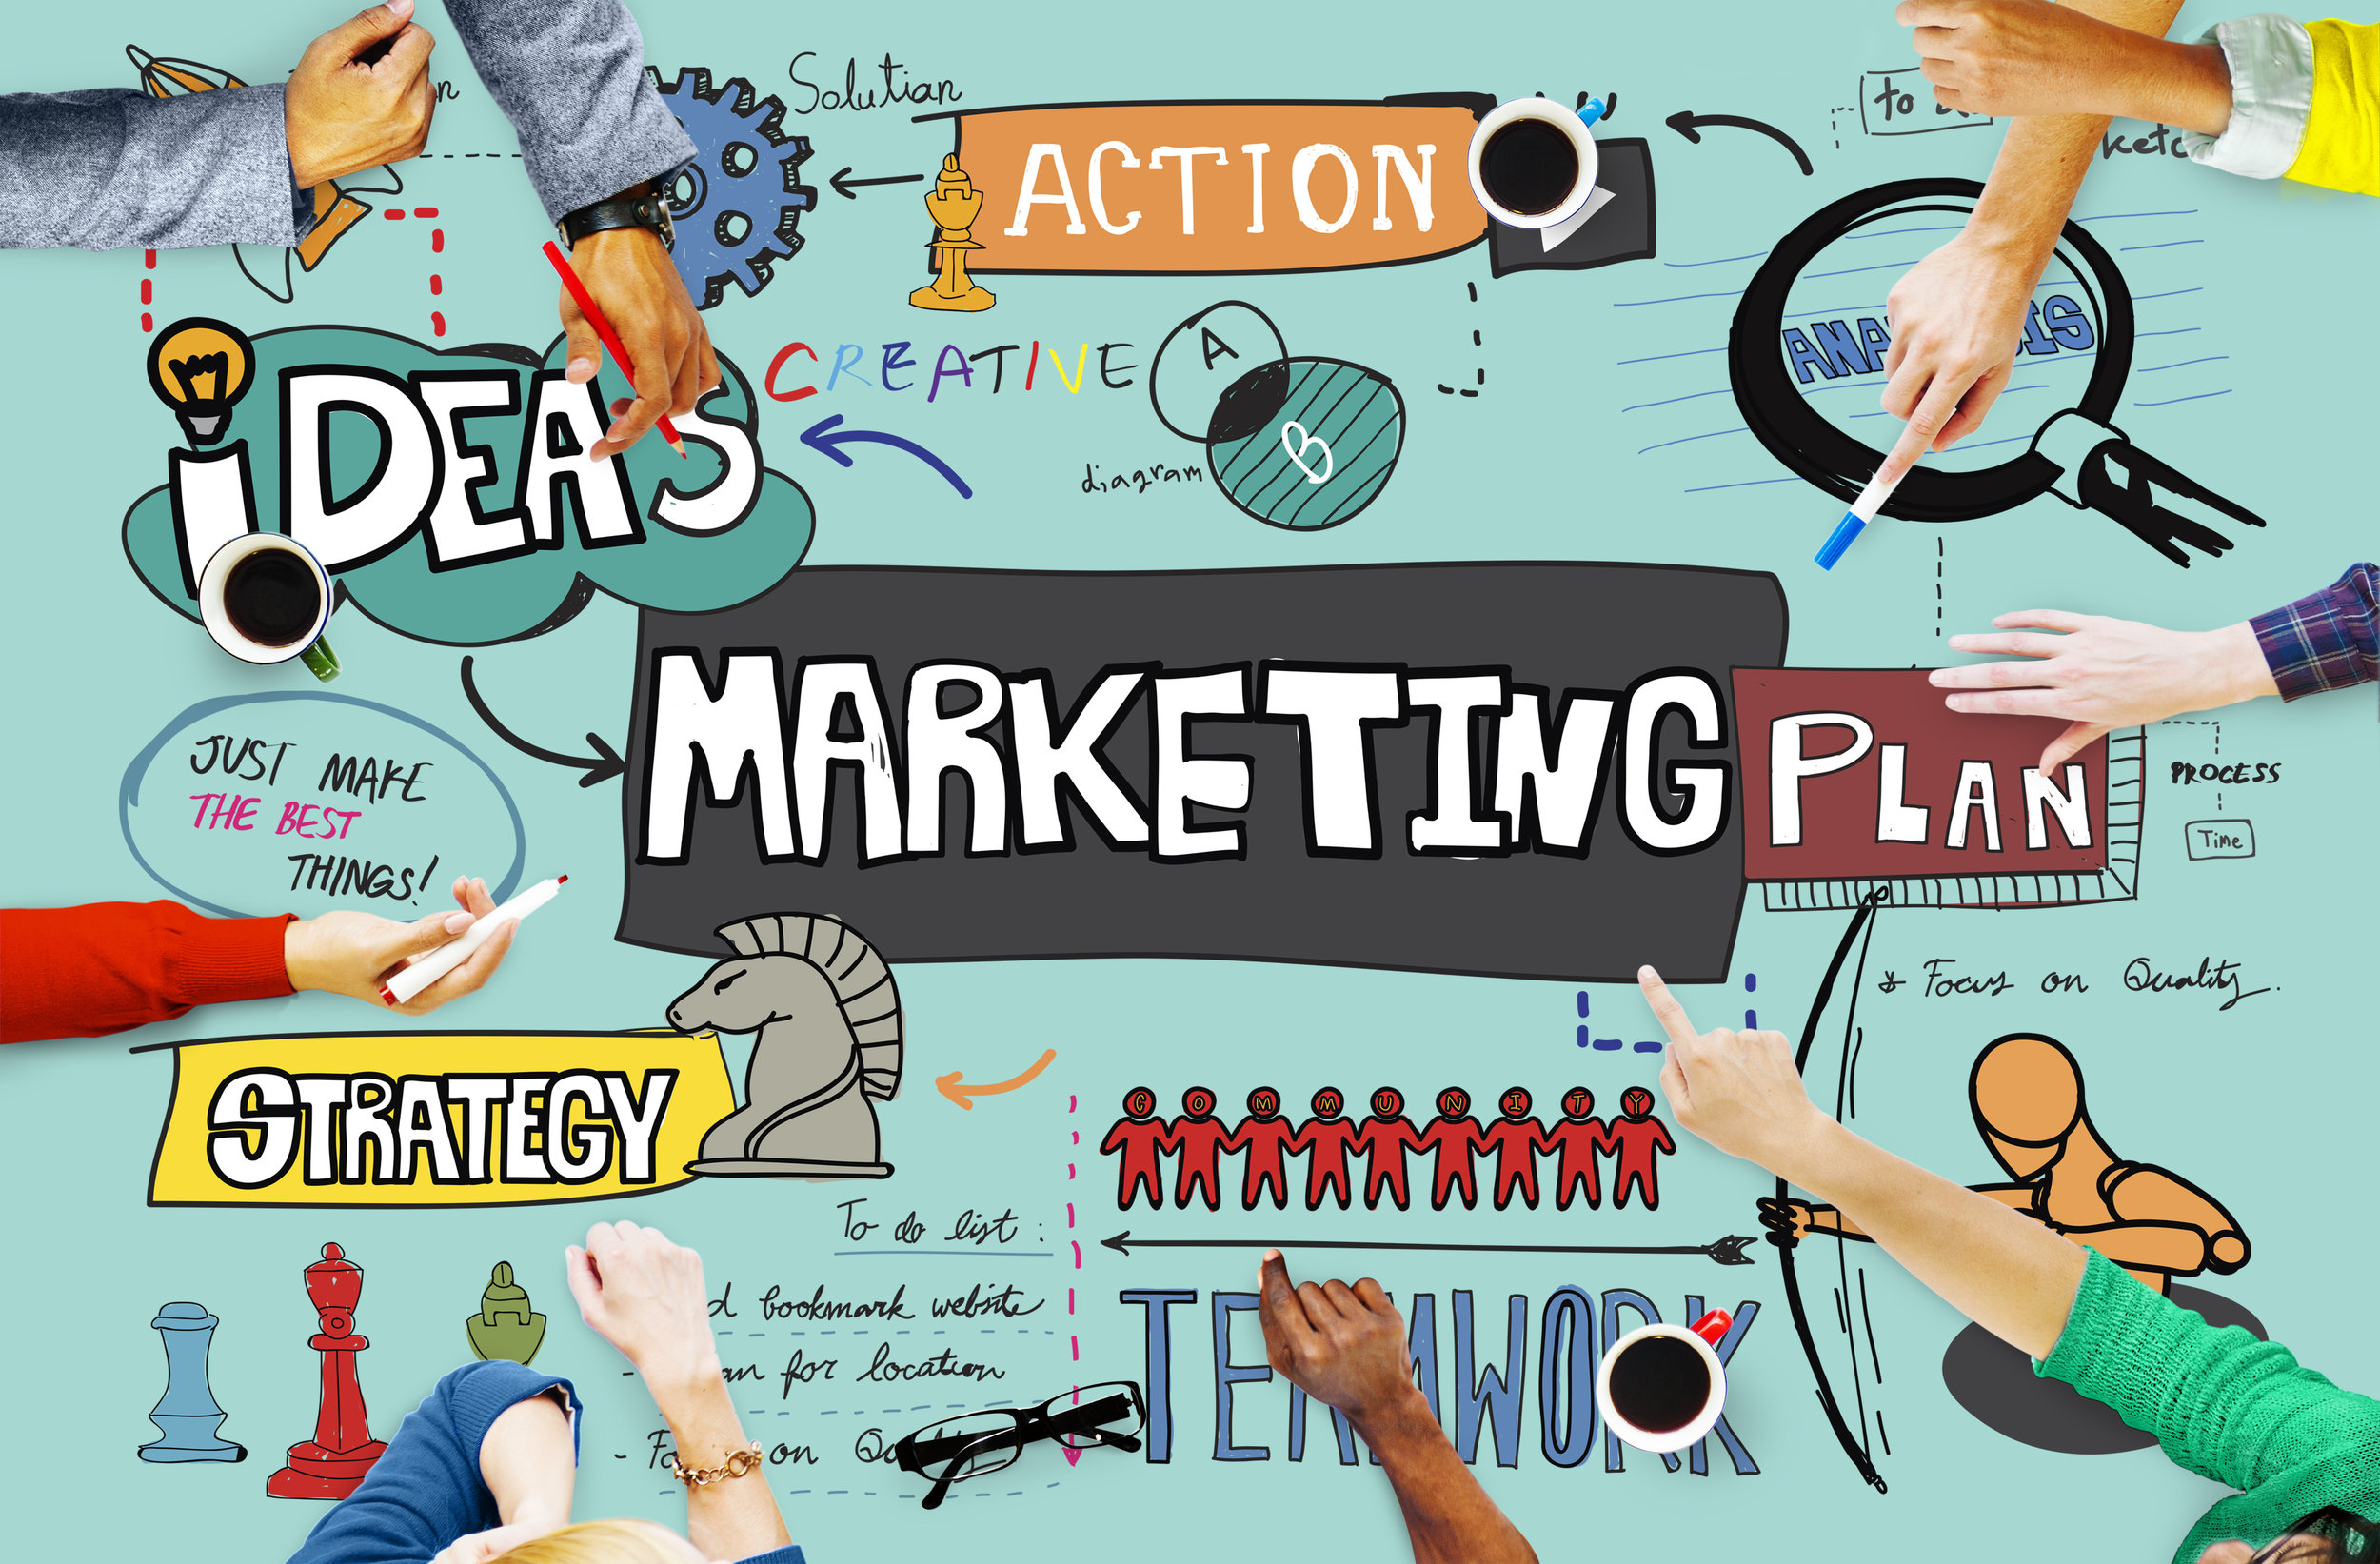 Effective marketing plan tips for small businesses and entrepreneurs